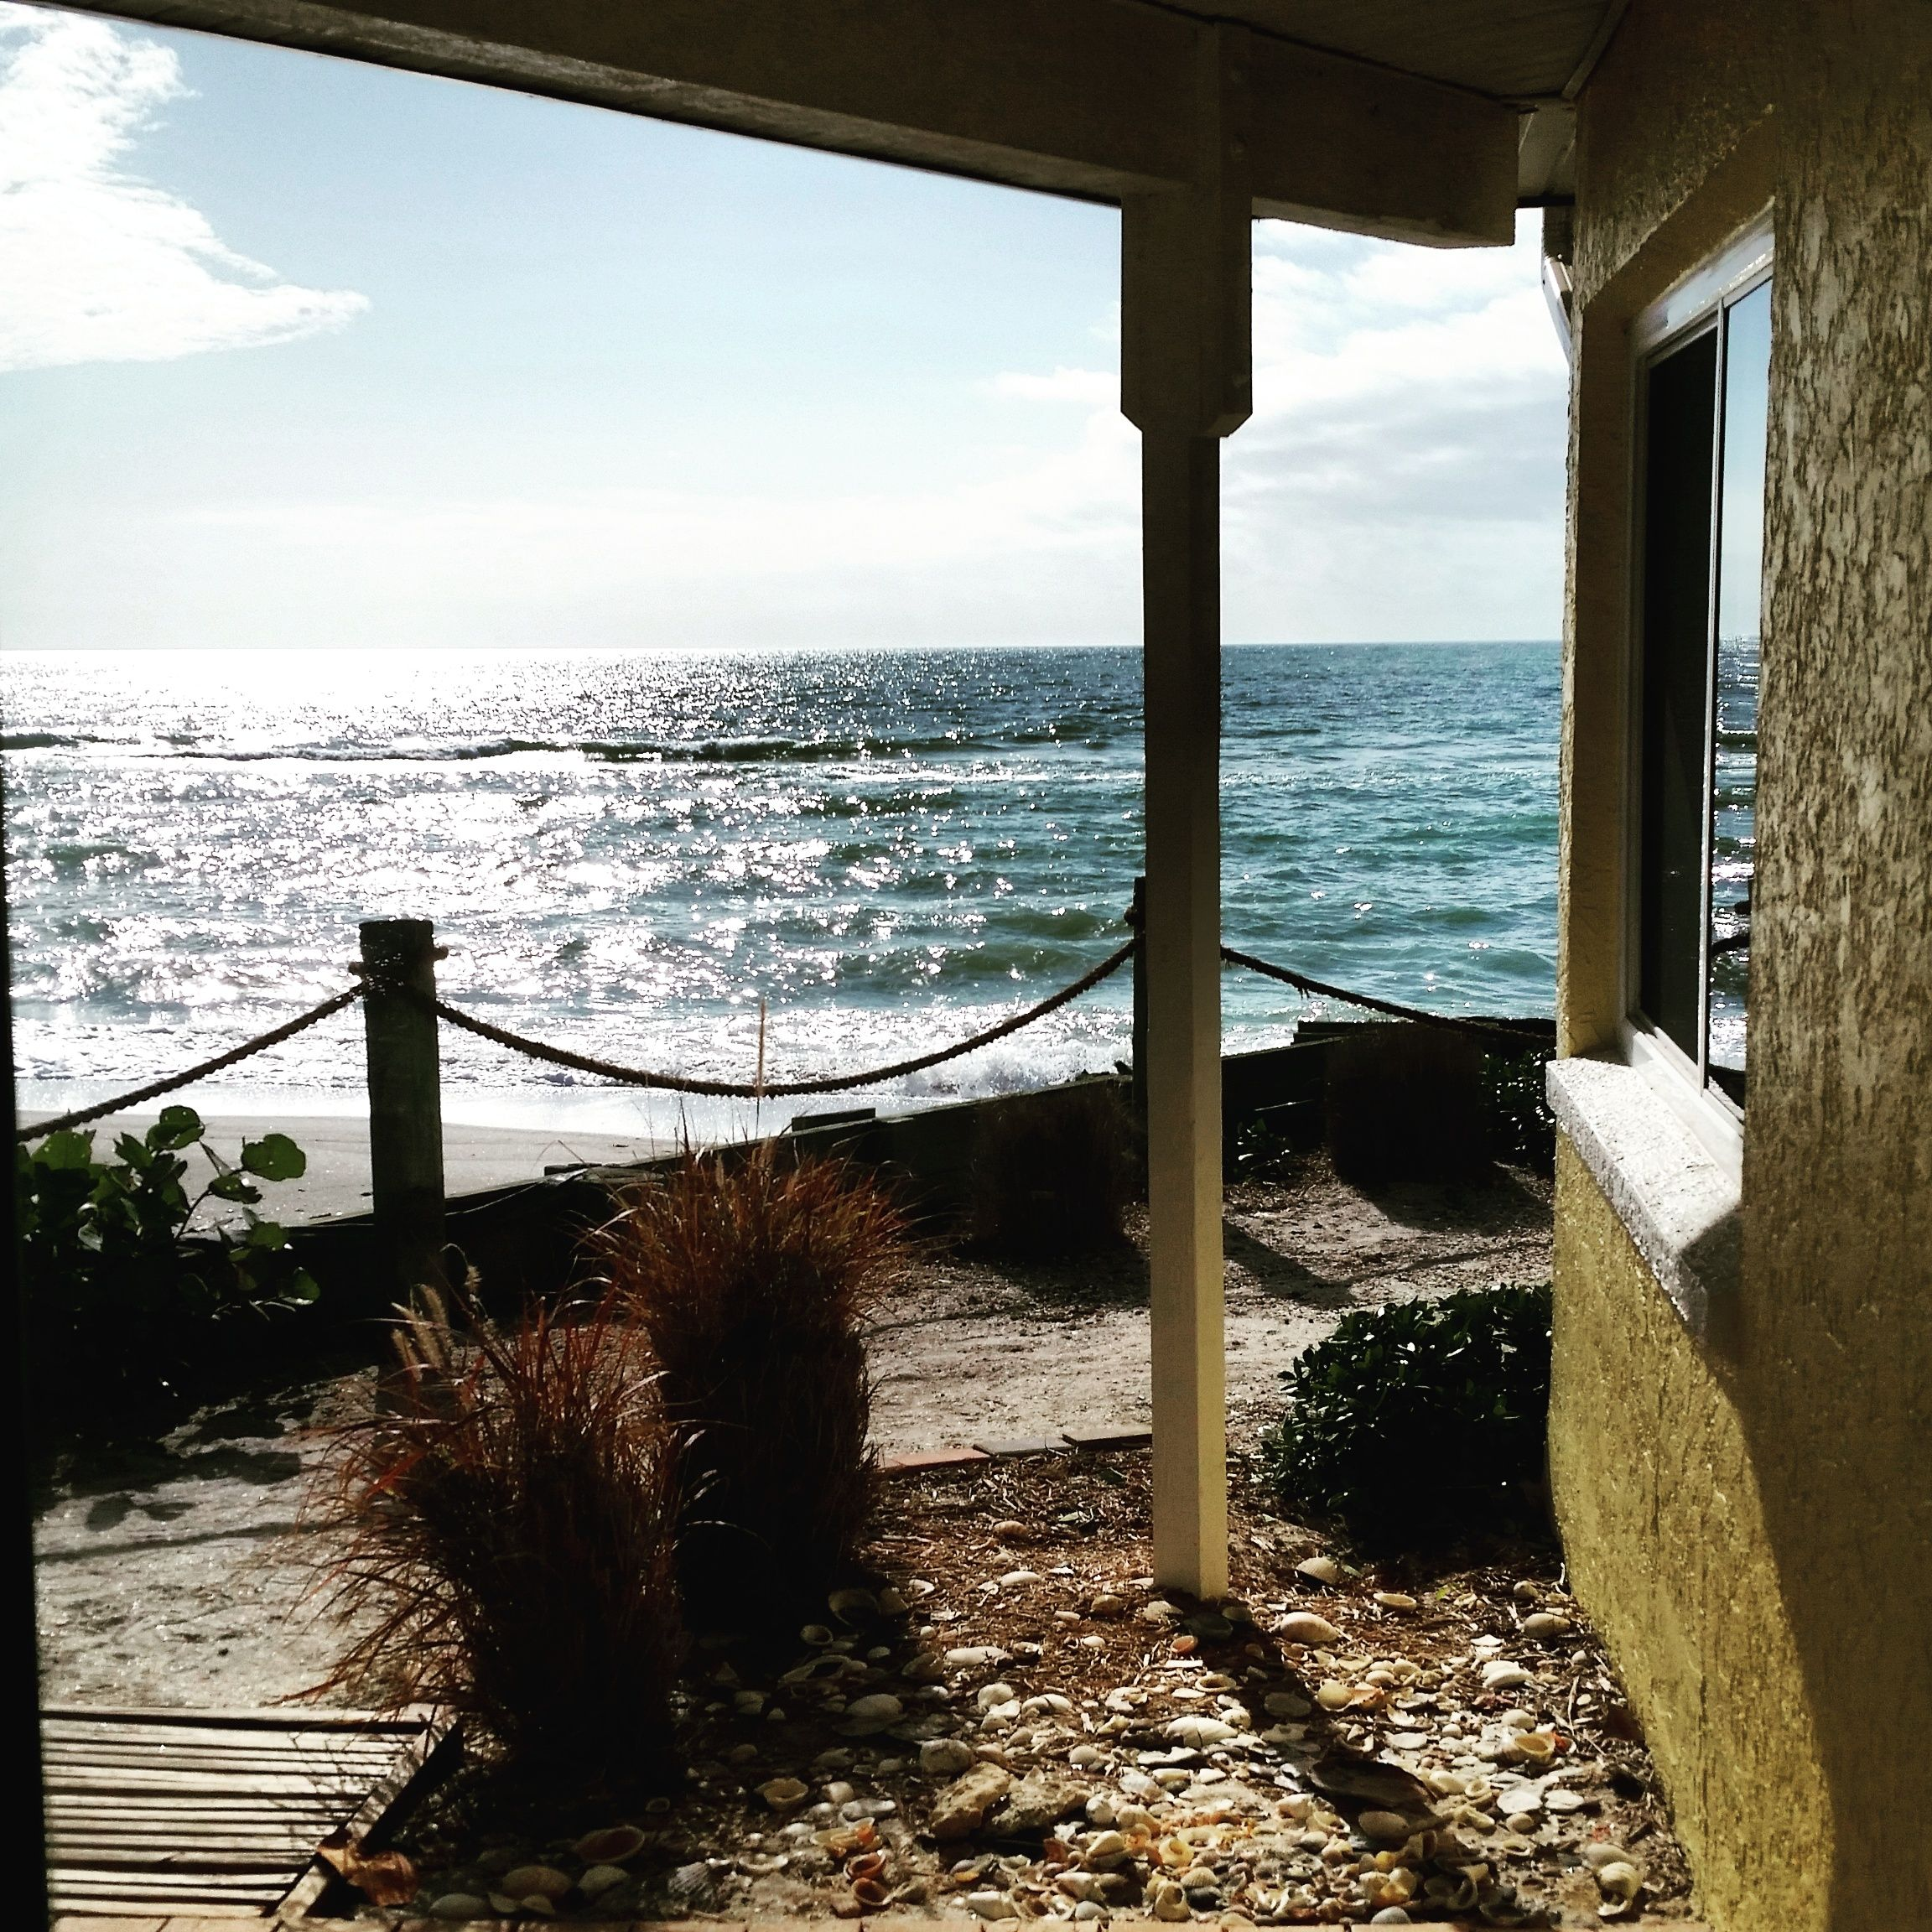 We're right on The Beach! | Florida hotels, Pearl beach ...